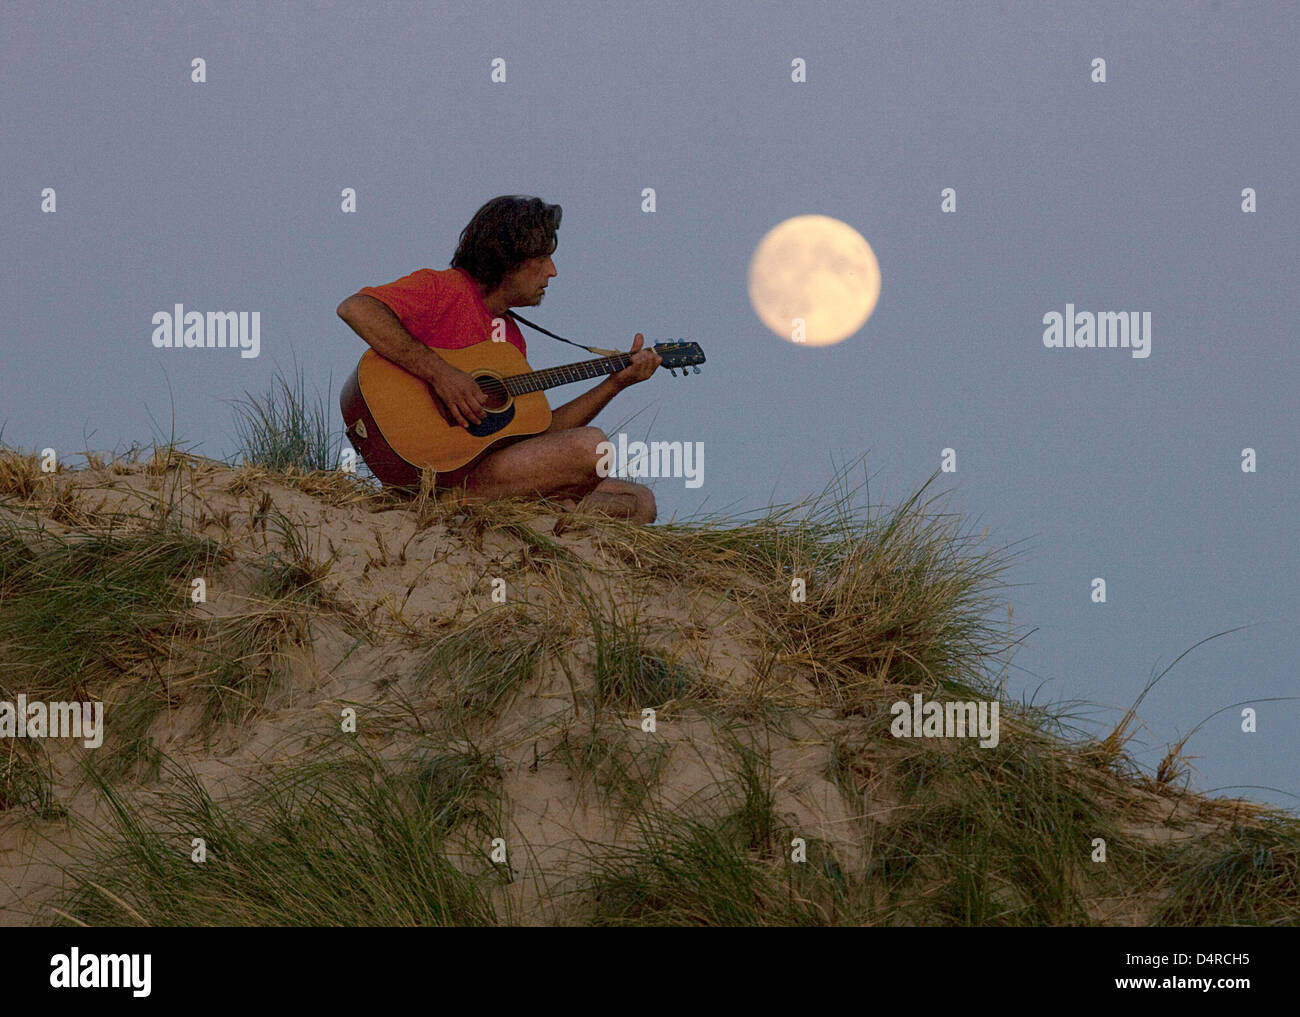 A Bohemian troubadour sits on a sand dune and serenades under the full moon on Amrum island, Germany, 04 August - Stock Image